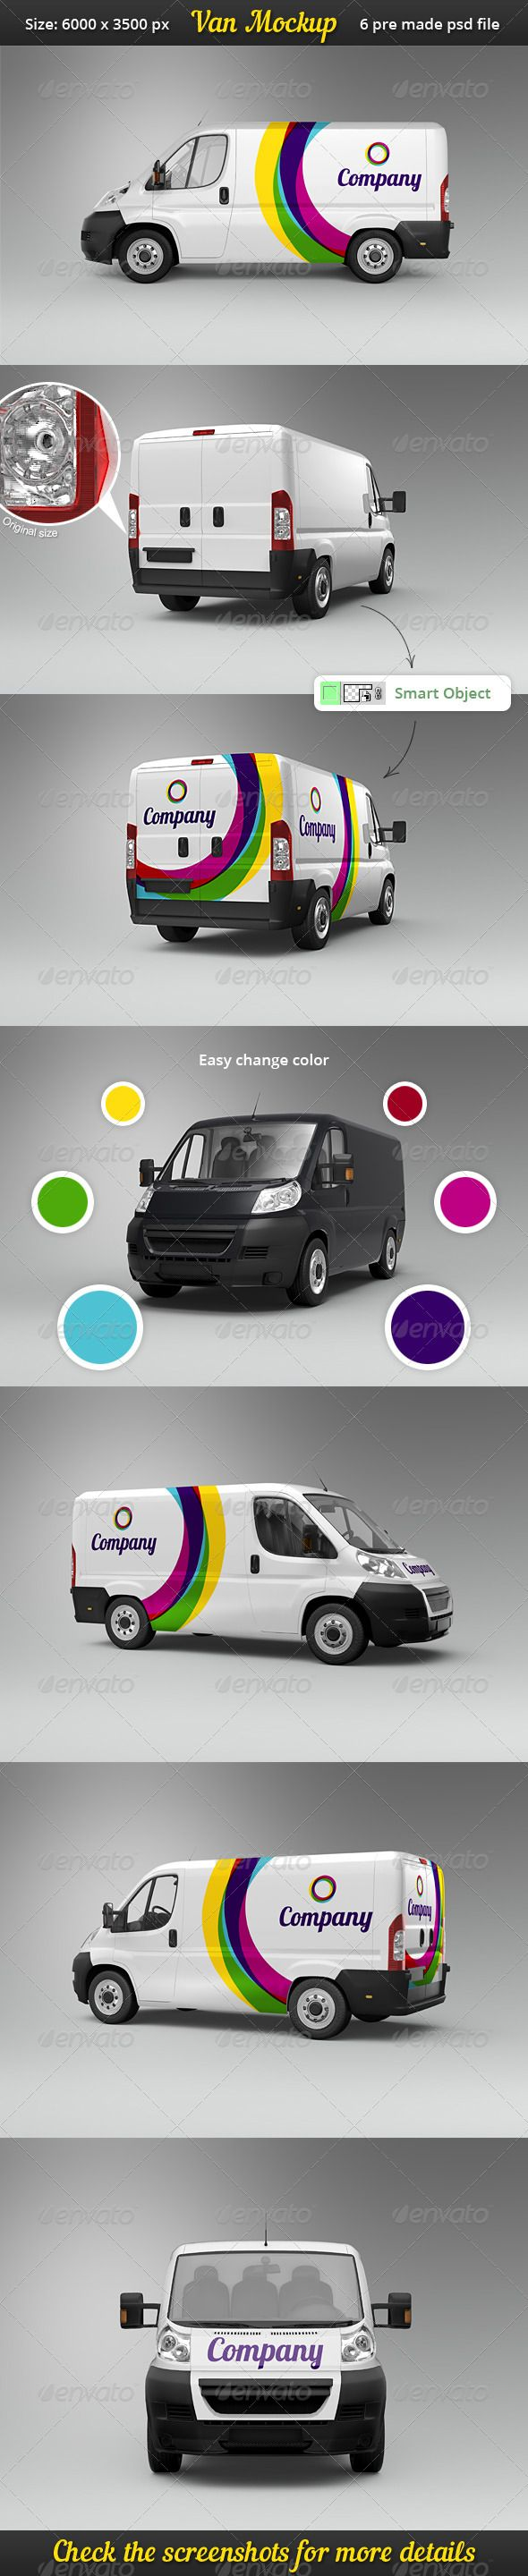 Van Car Mock-Up Download here: https://graphicriver.net/item/van-car-mockup/7010555?ref=KlitVogli